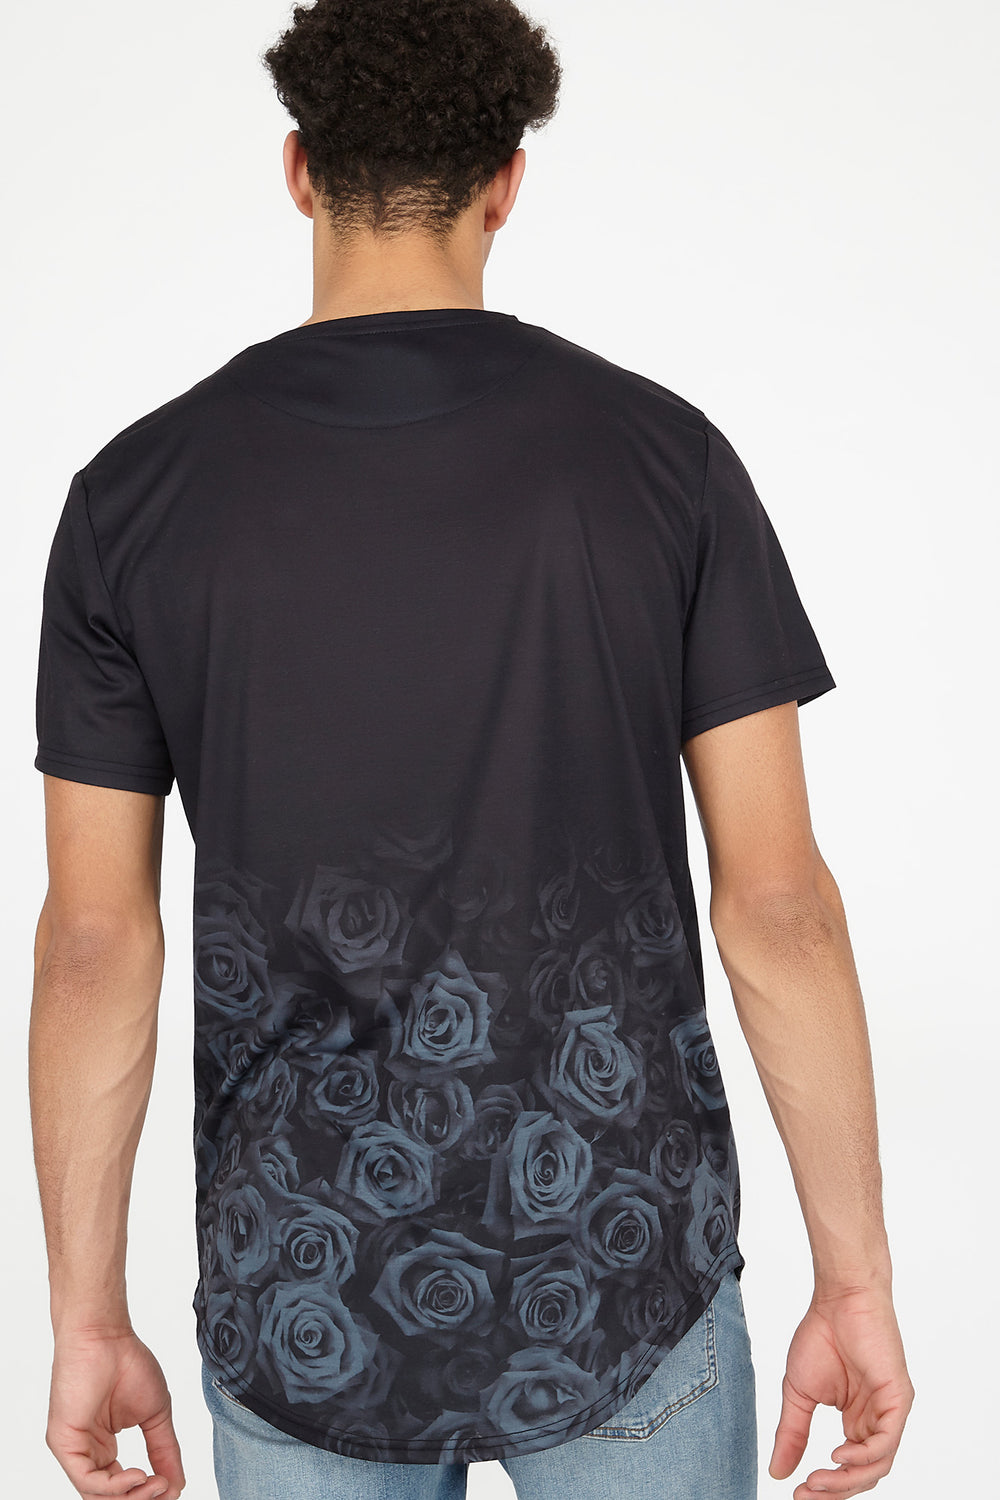 Floral Never Enough Embroidered Longline Graphic T-Shirt Black